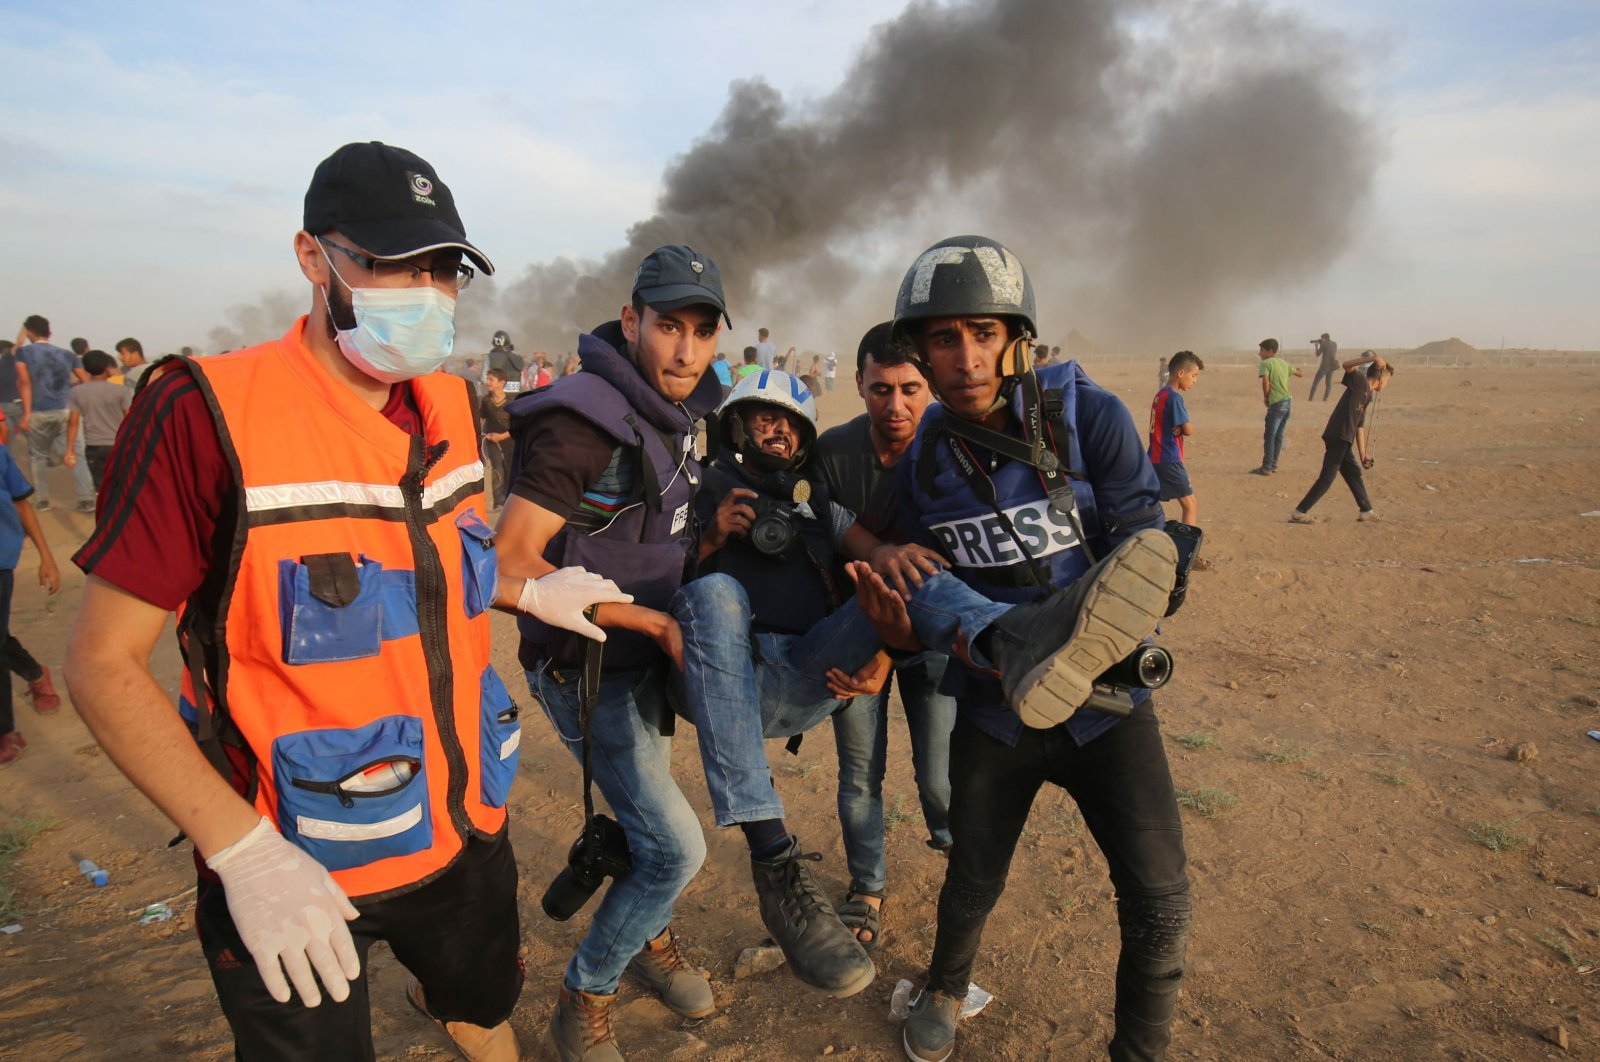 Palestinian paramedics and journalists carry a wounded fellow journalist during clashes with Israeli forces east of Gaza city, along the Gaza-Israel border in the Gaza Strip, Oct. 5, 2018. (AFP Photo)